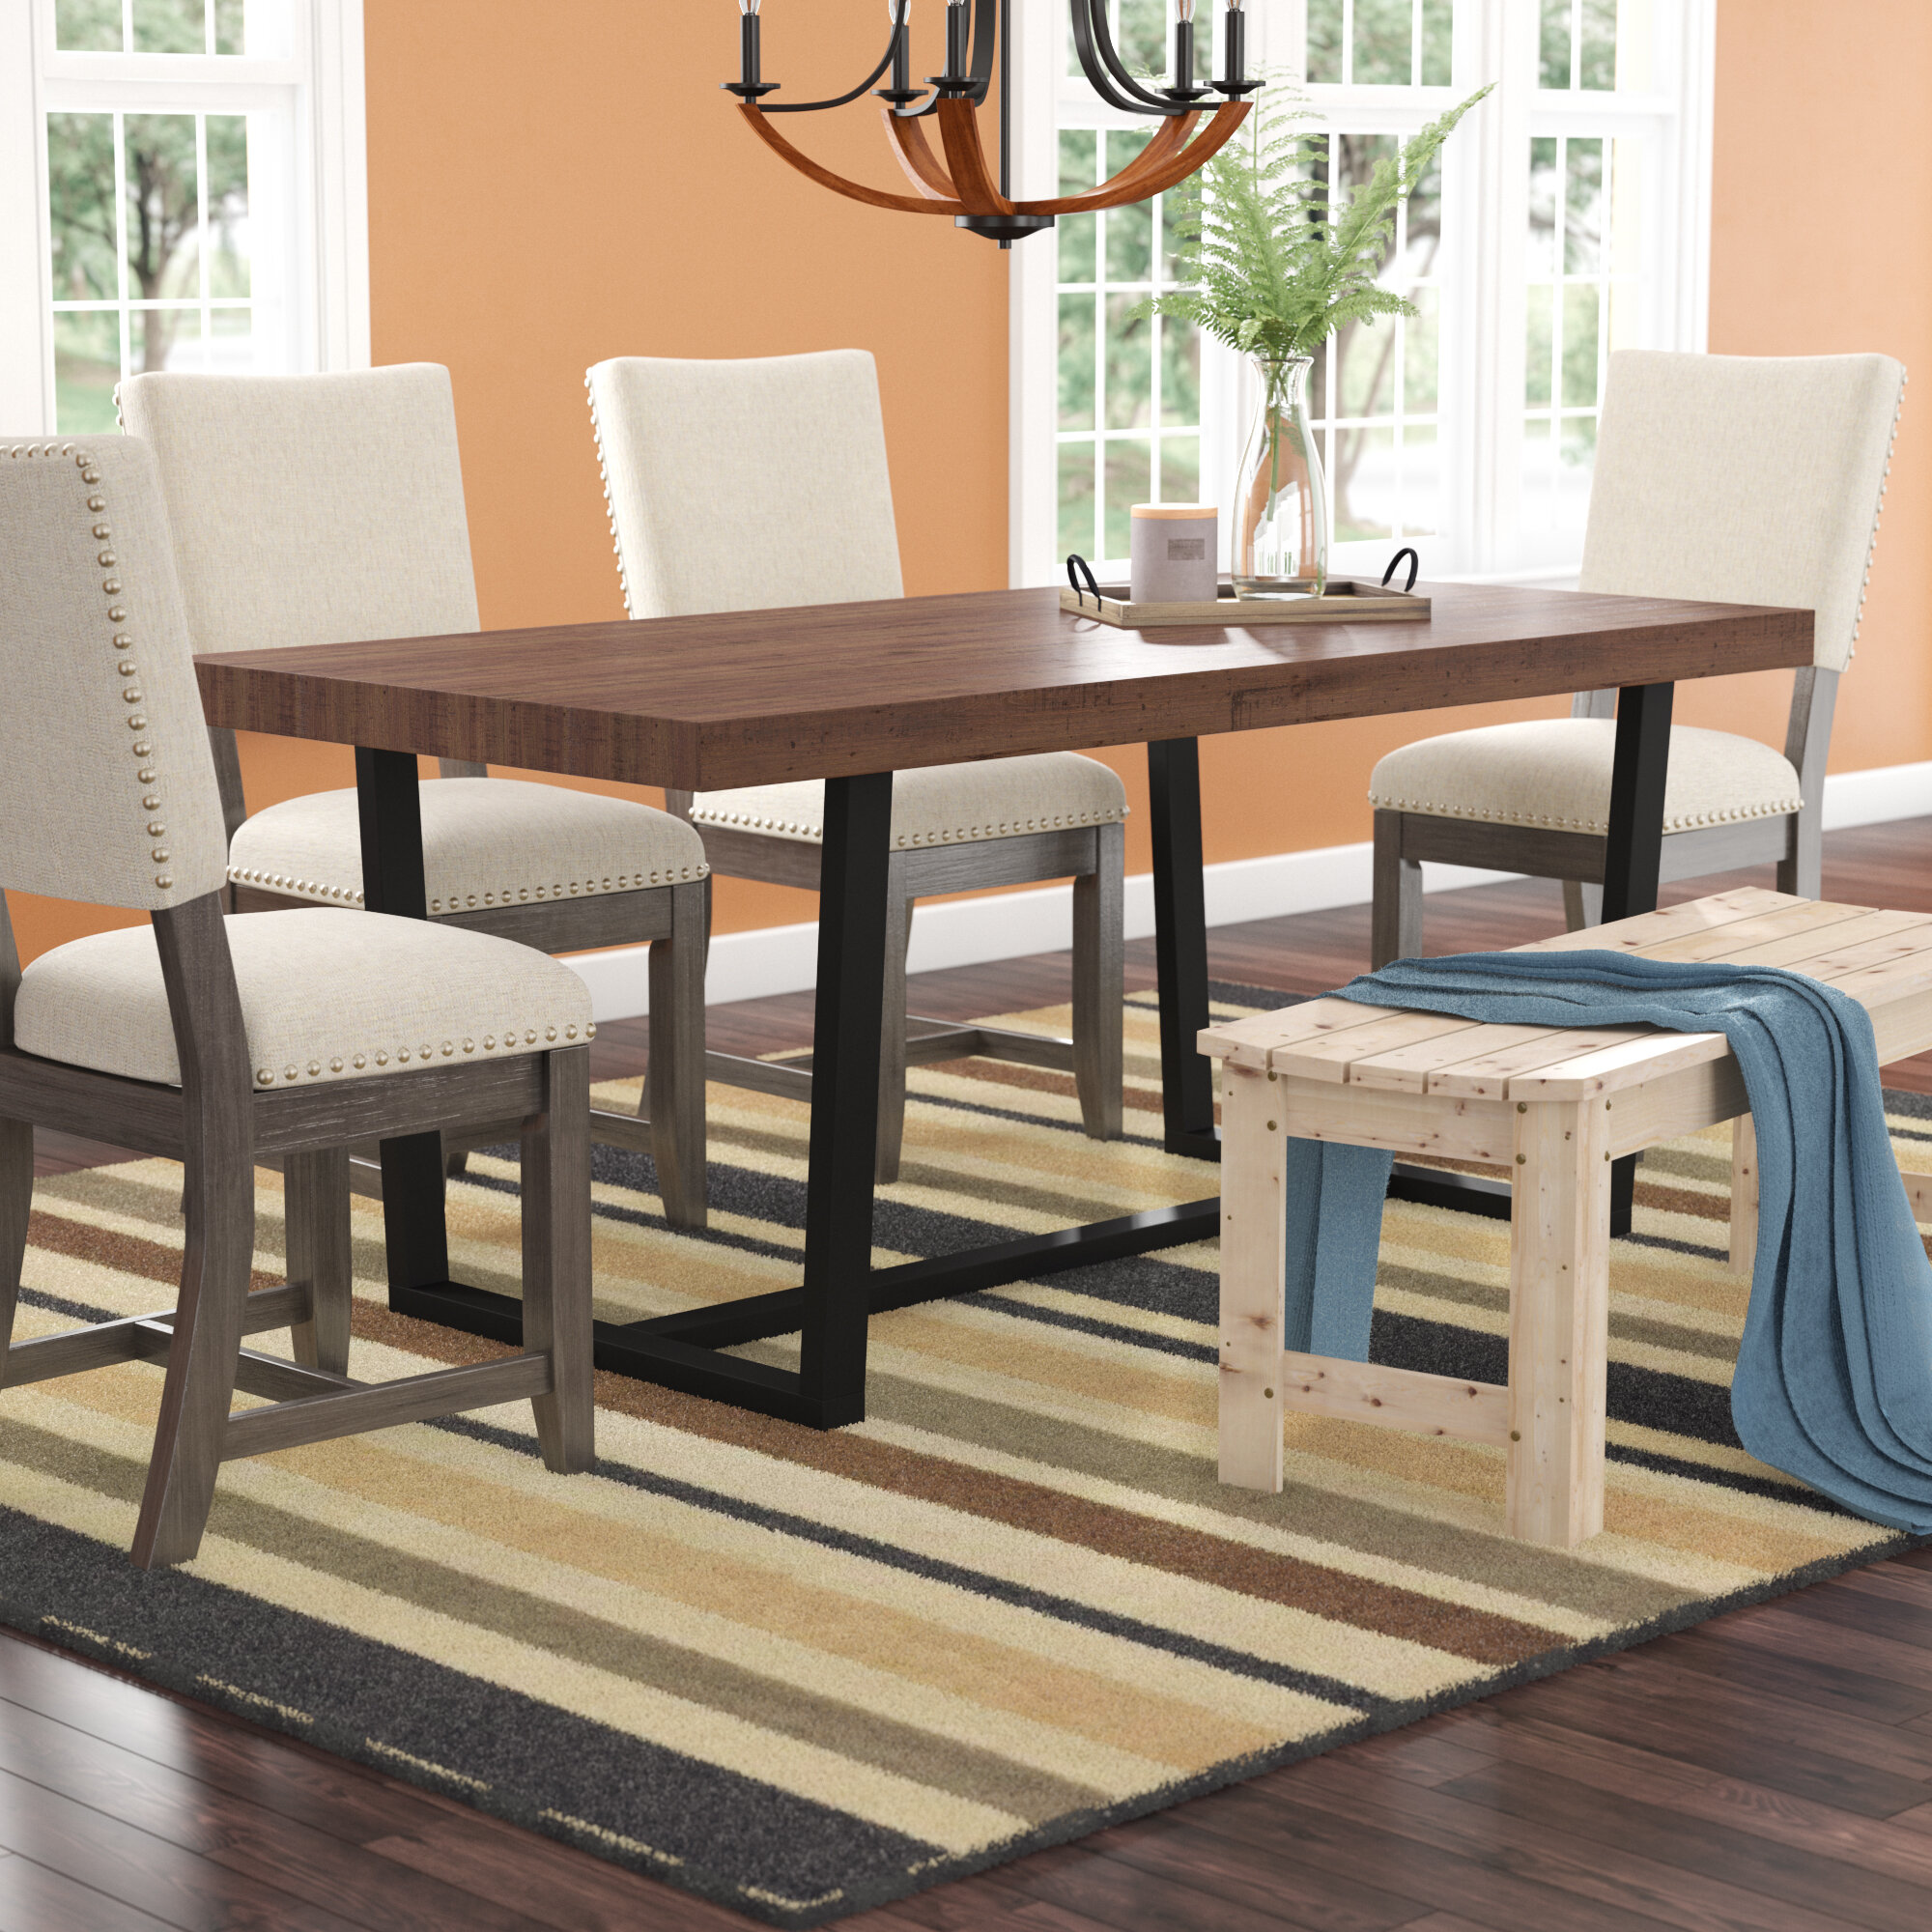 Wayfair & Neely Distressed Solid Wood Dining Table